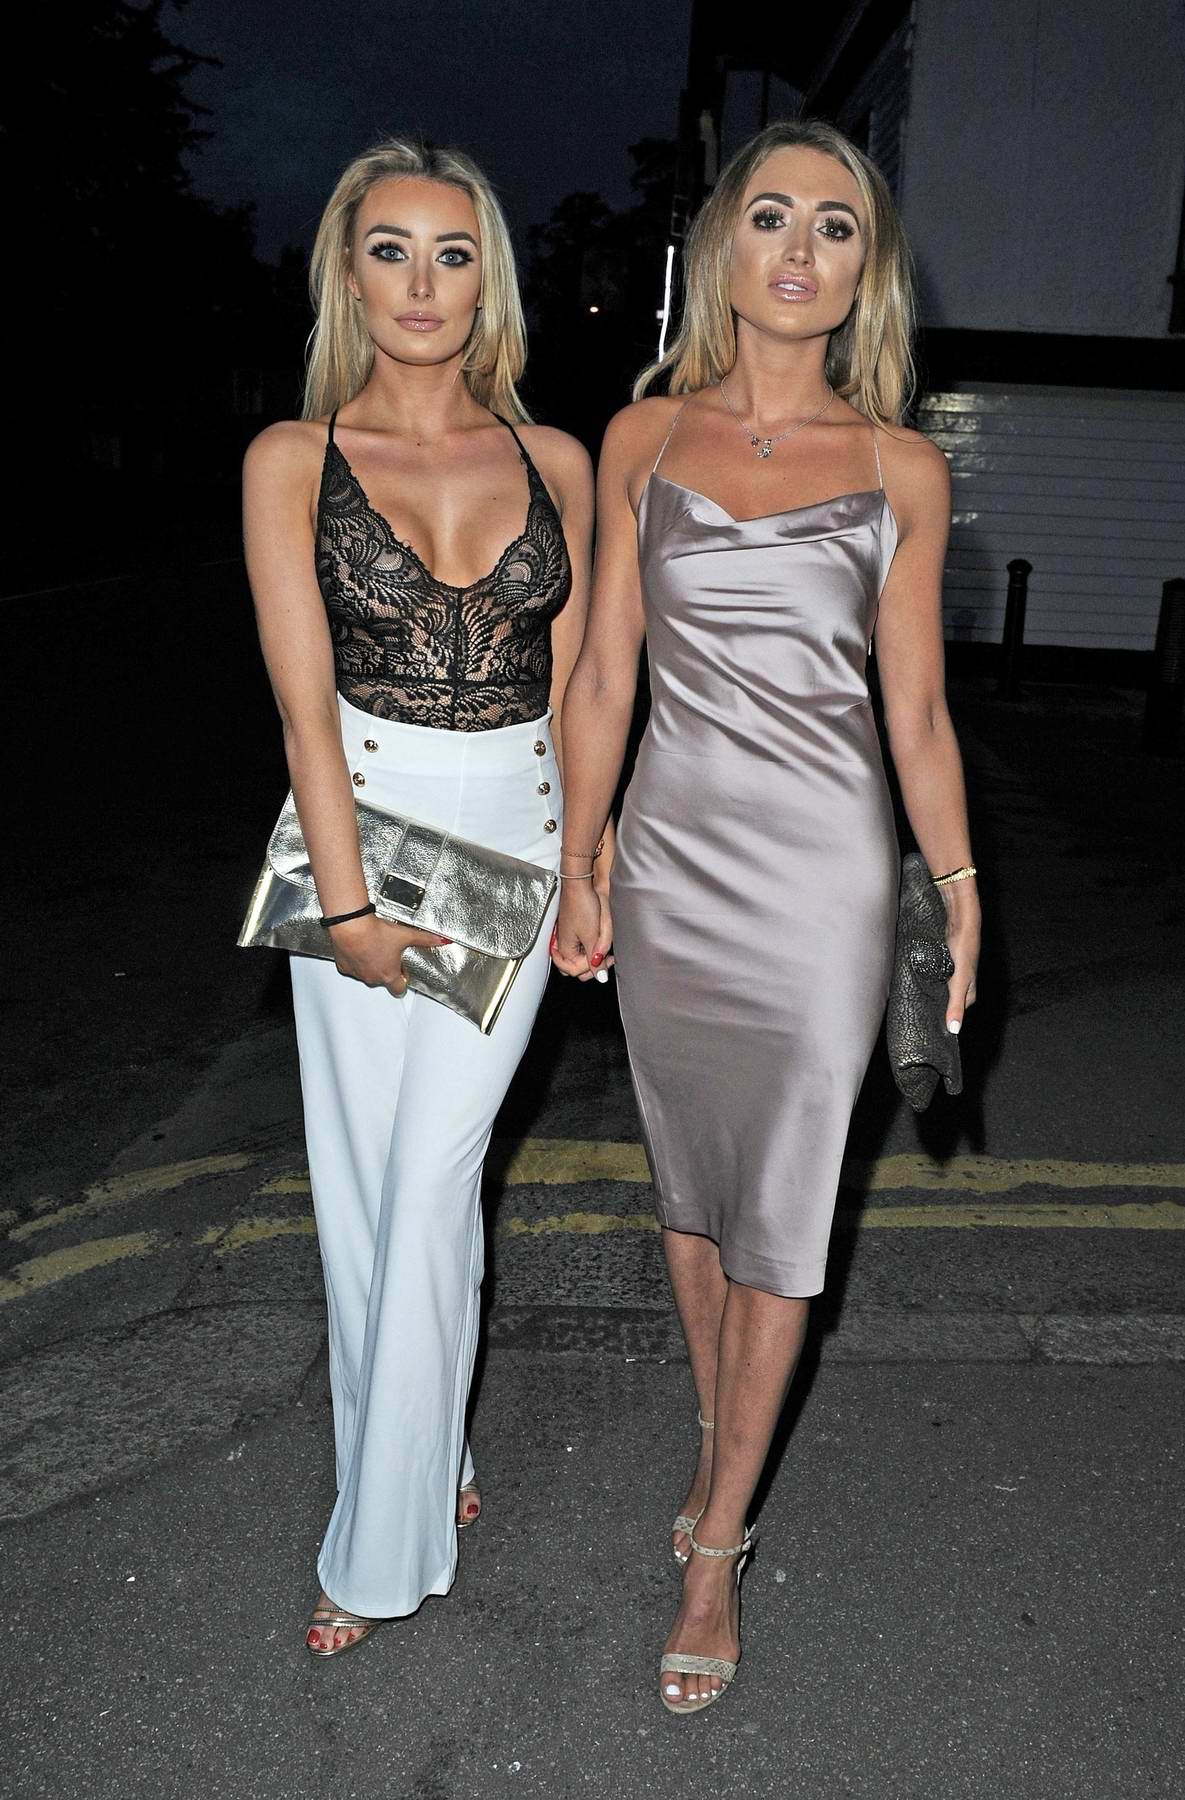 Chloe Crowhurst and Georgia Harrison spotted on a night out at Sheesh in Essex, UK